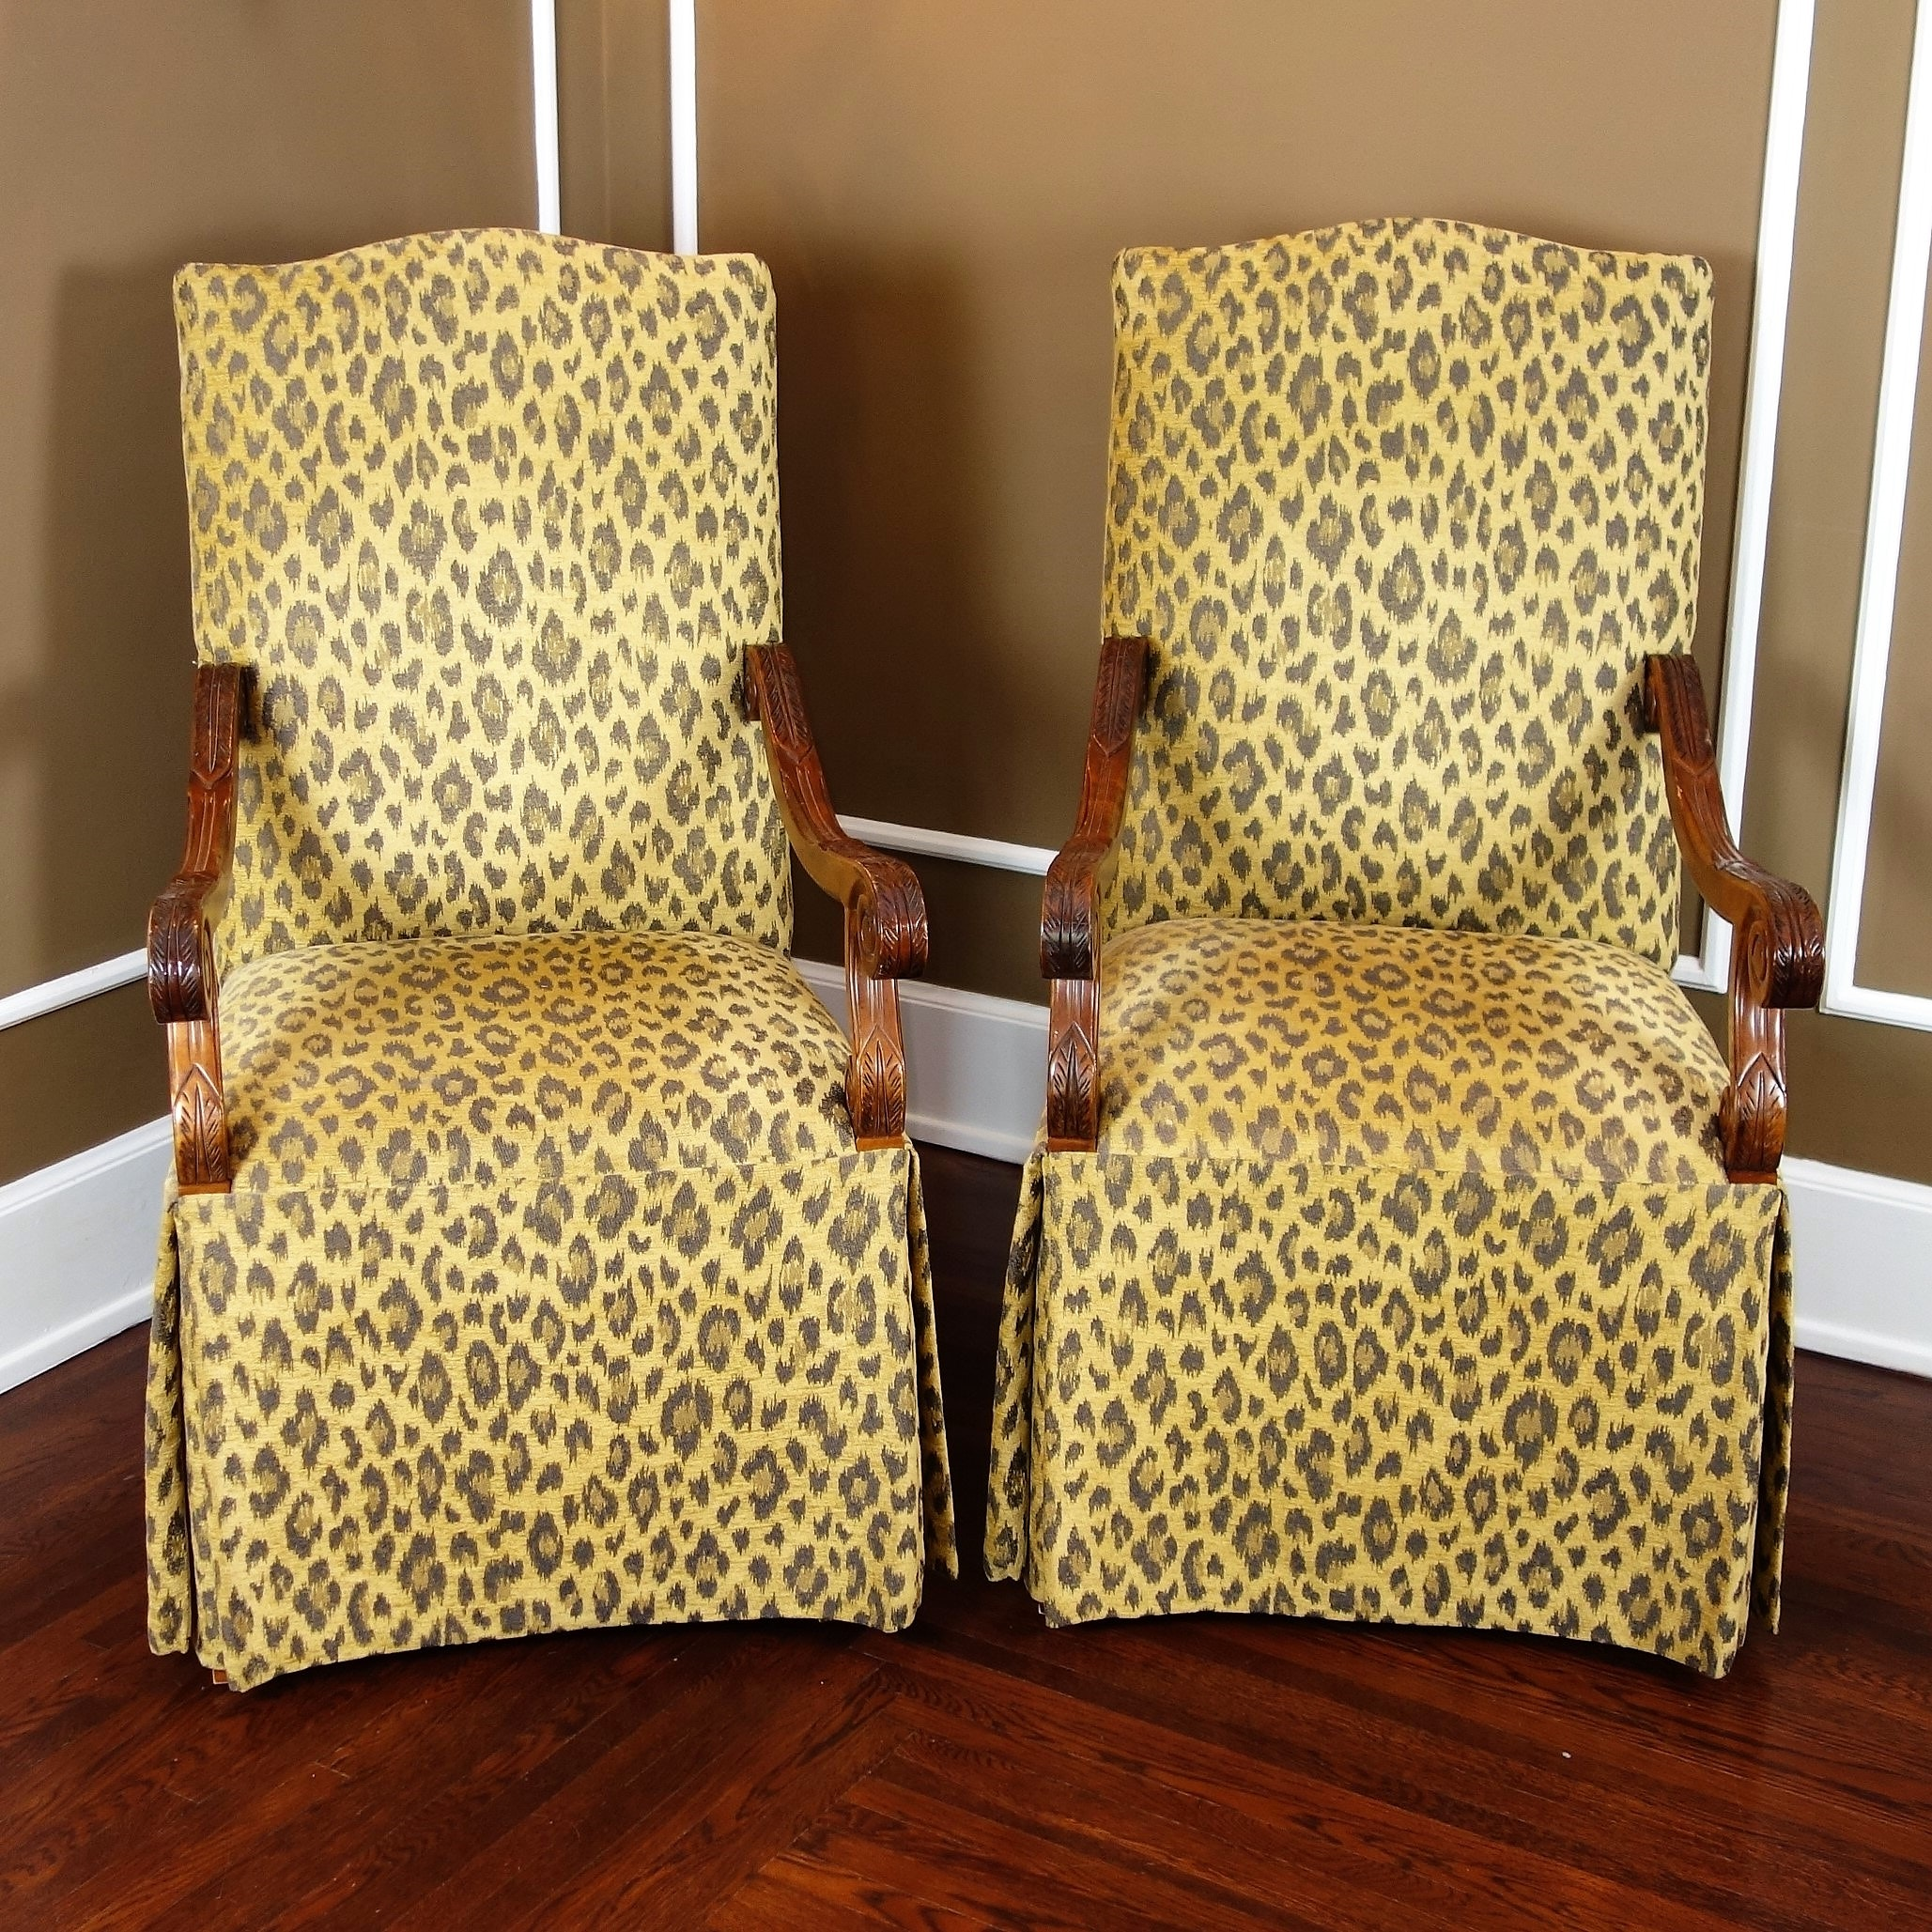 Leopard Print Chairs by Century Furniture